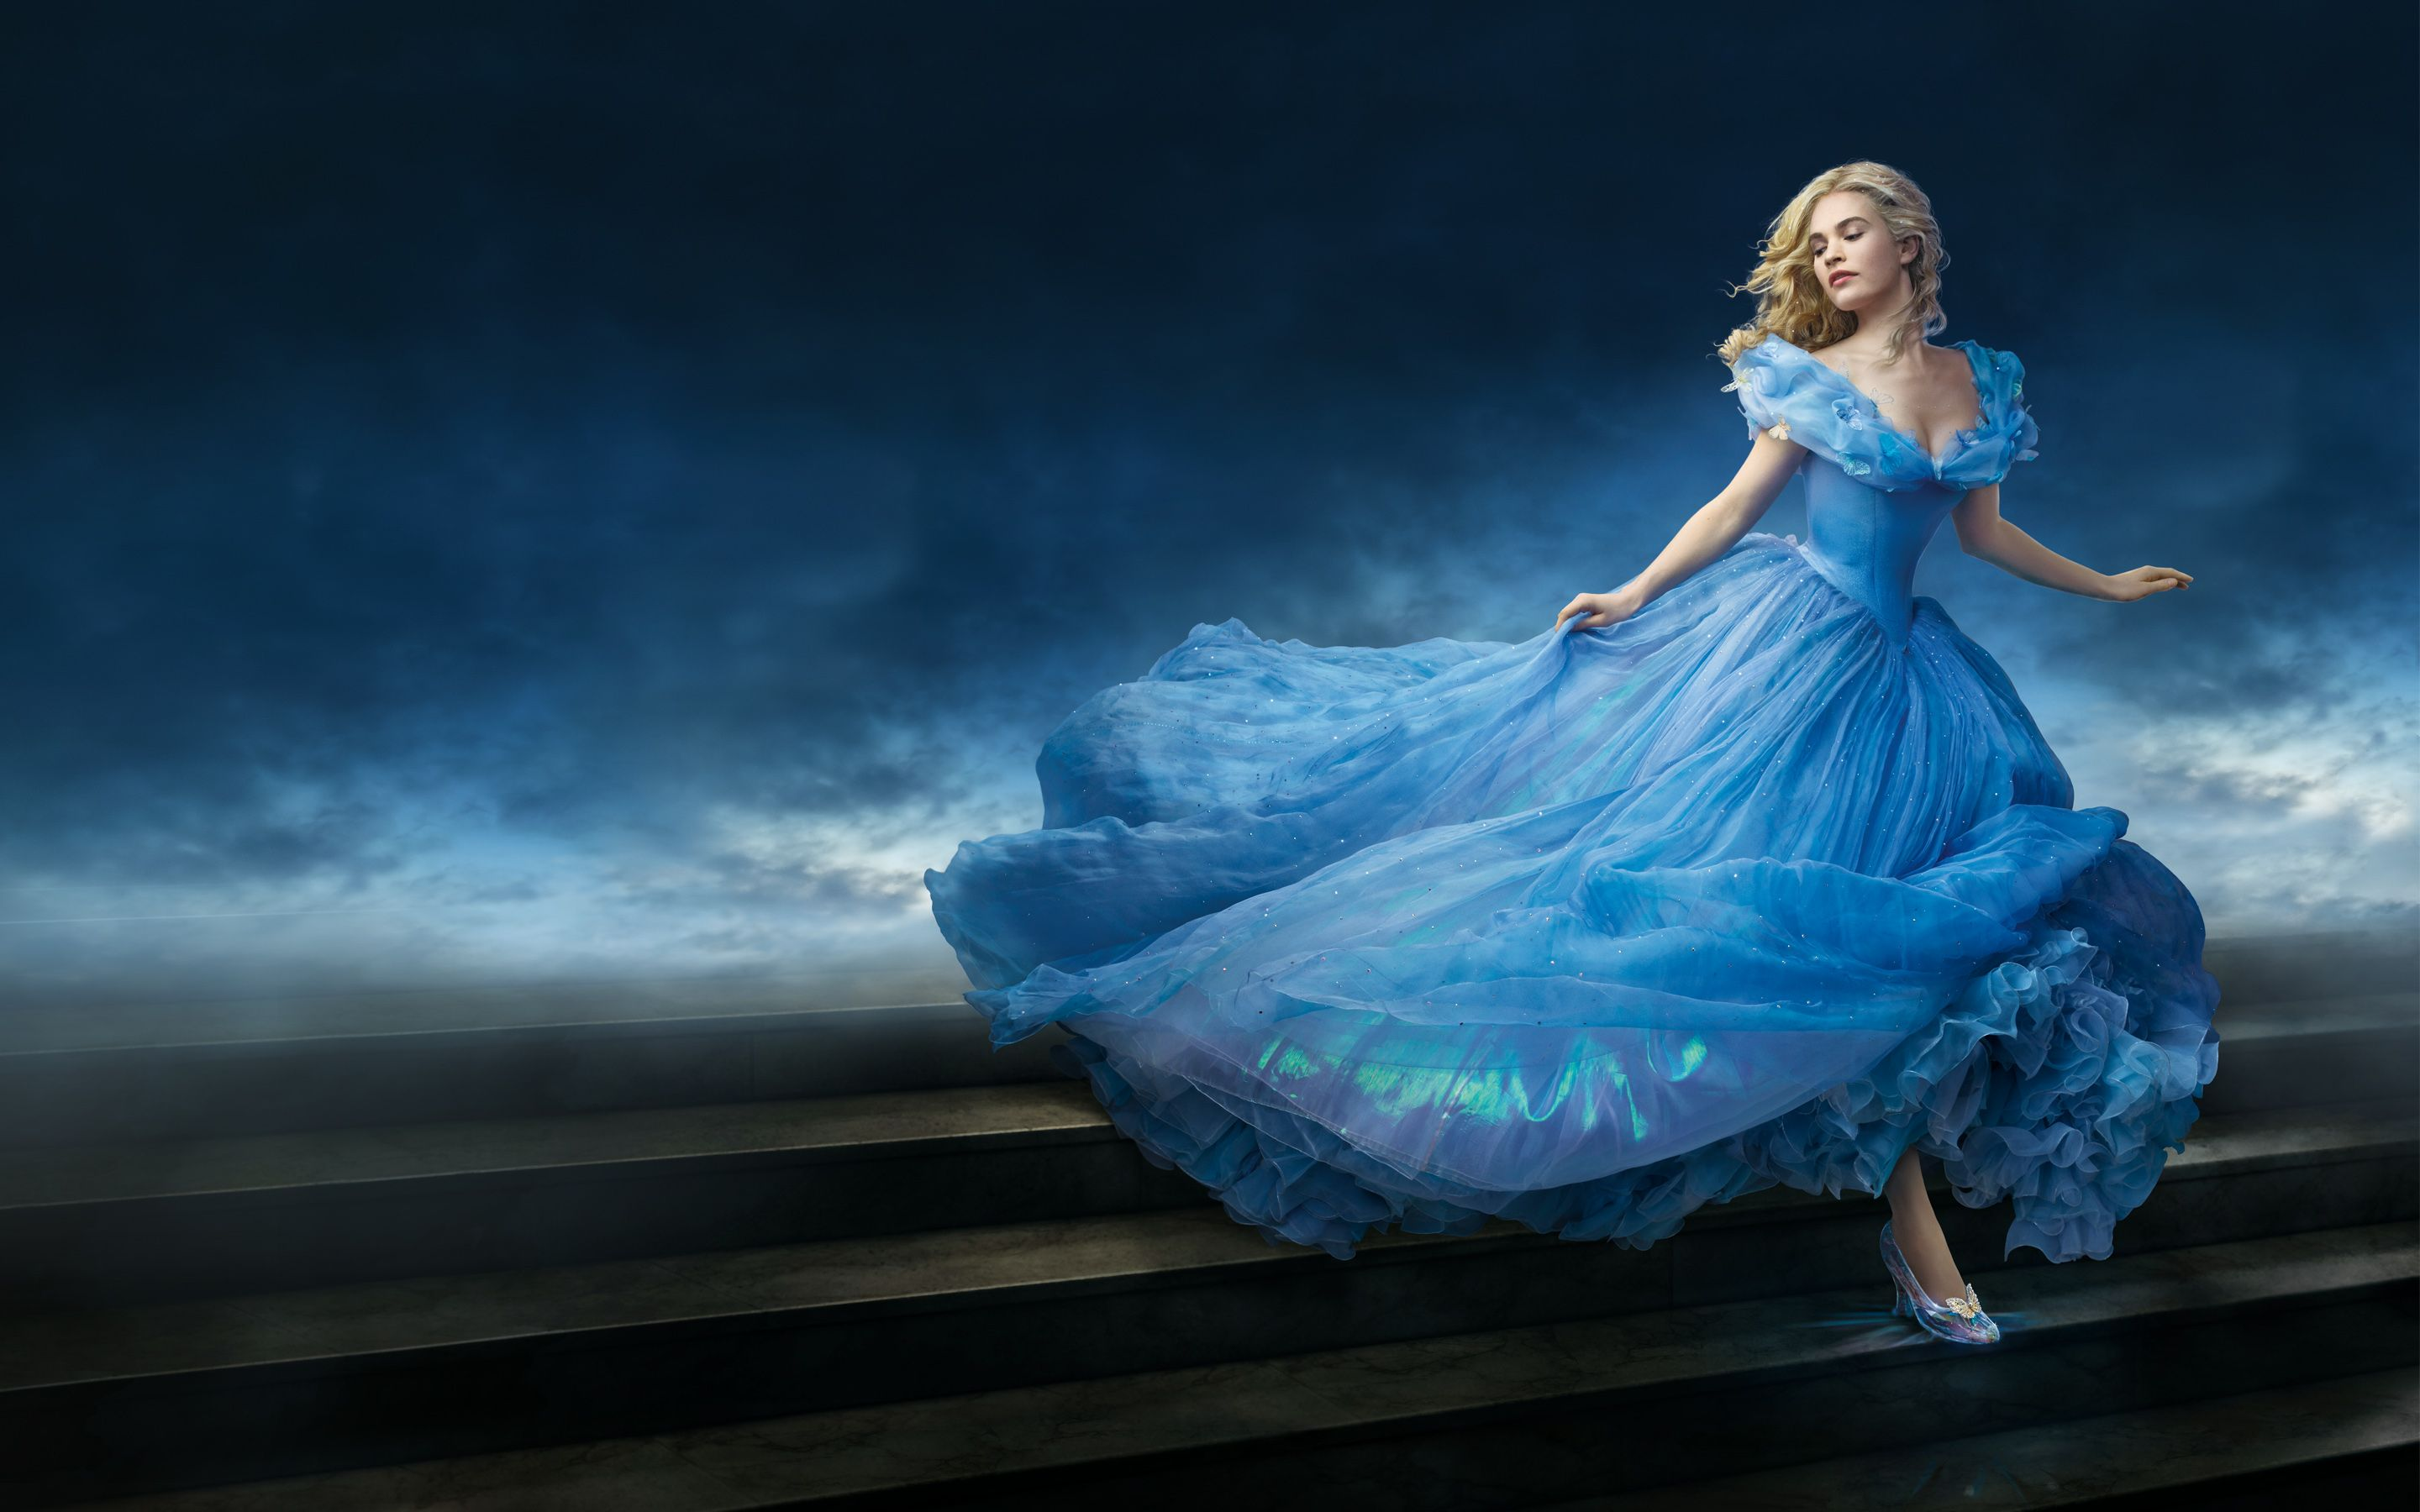 Lily James As Cinderella 4233453 2880x1800 All For Desktop Cinderella Wallpaper Cinderella Movie Disney Princess Costumes